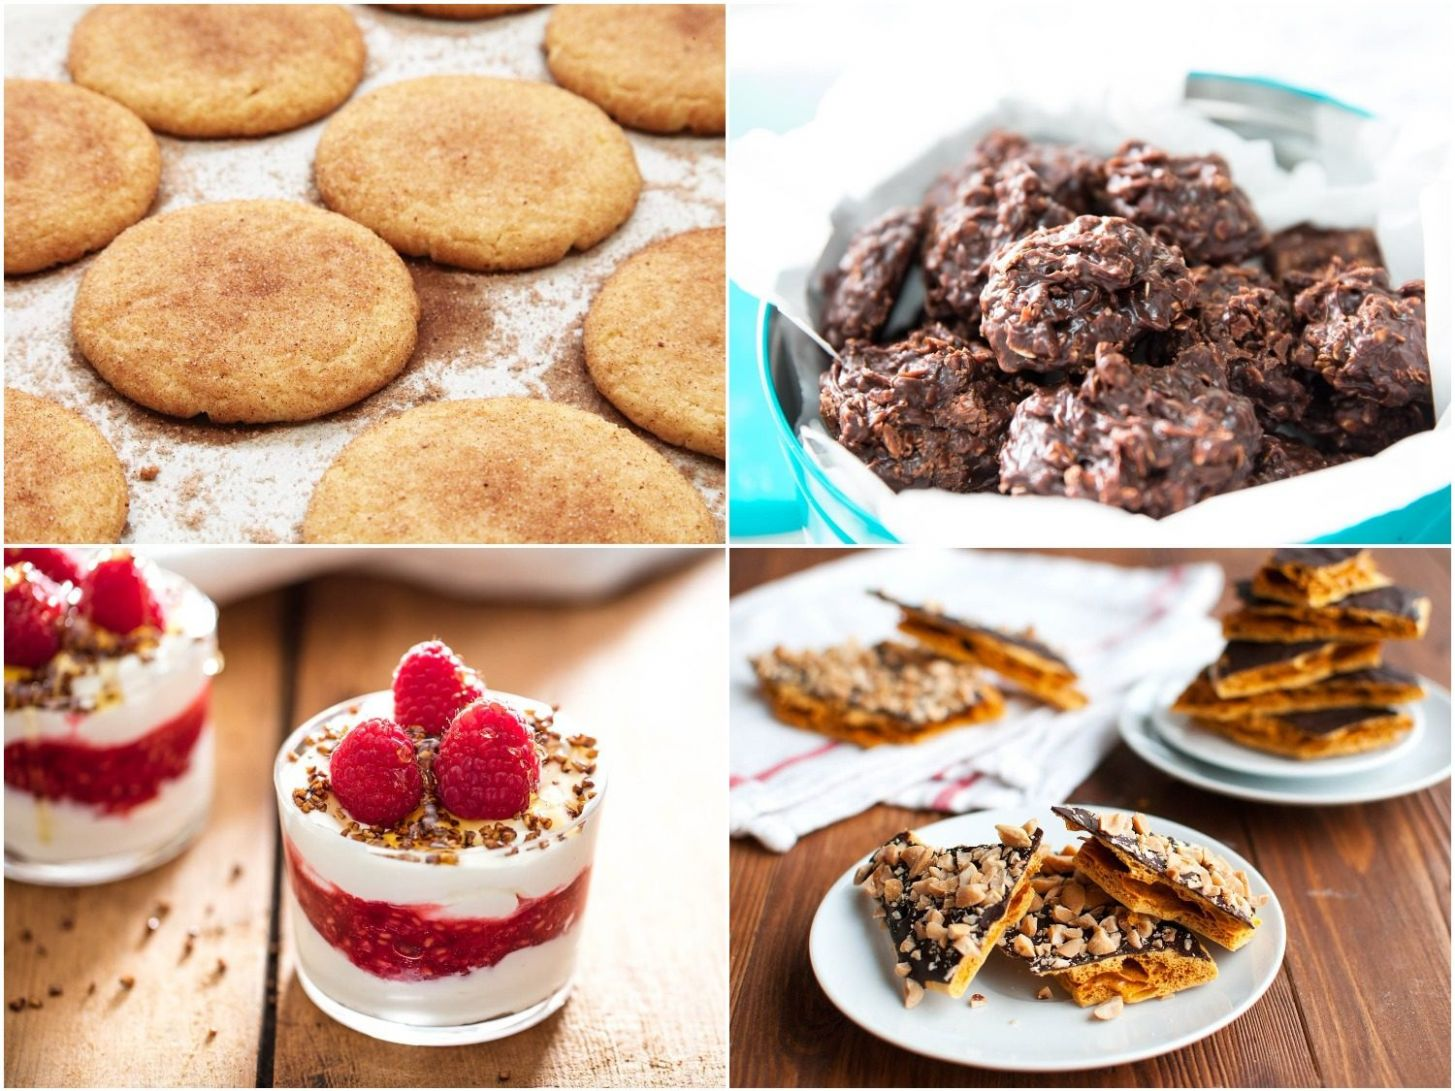 11 Quick and Easy Dessert Recipes | Serious Eats - Dessert Recipes Quick N Easy